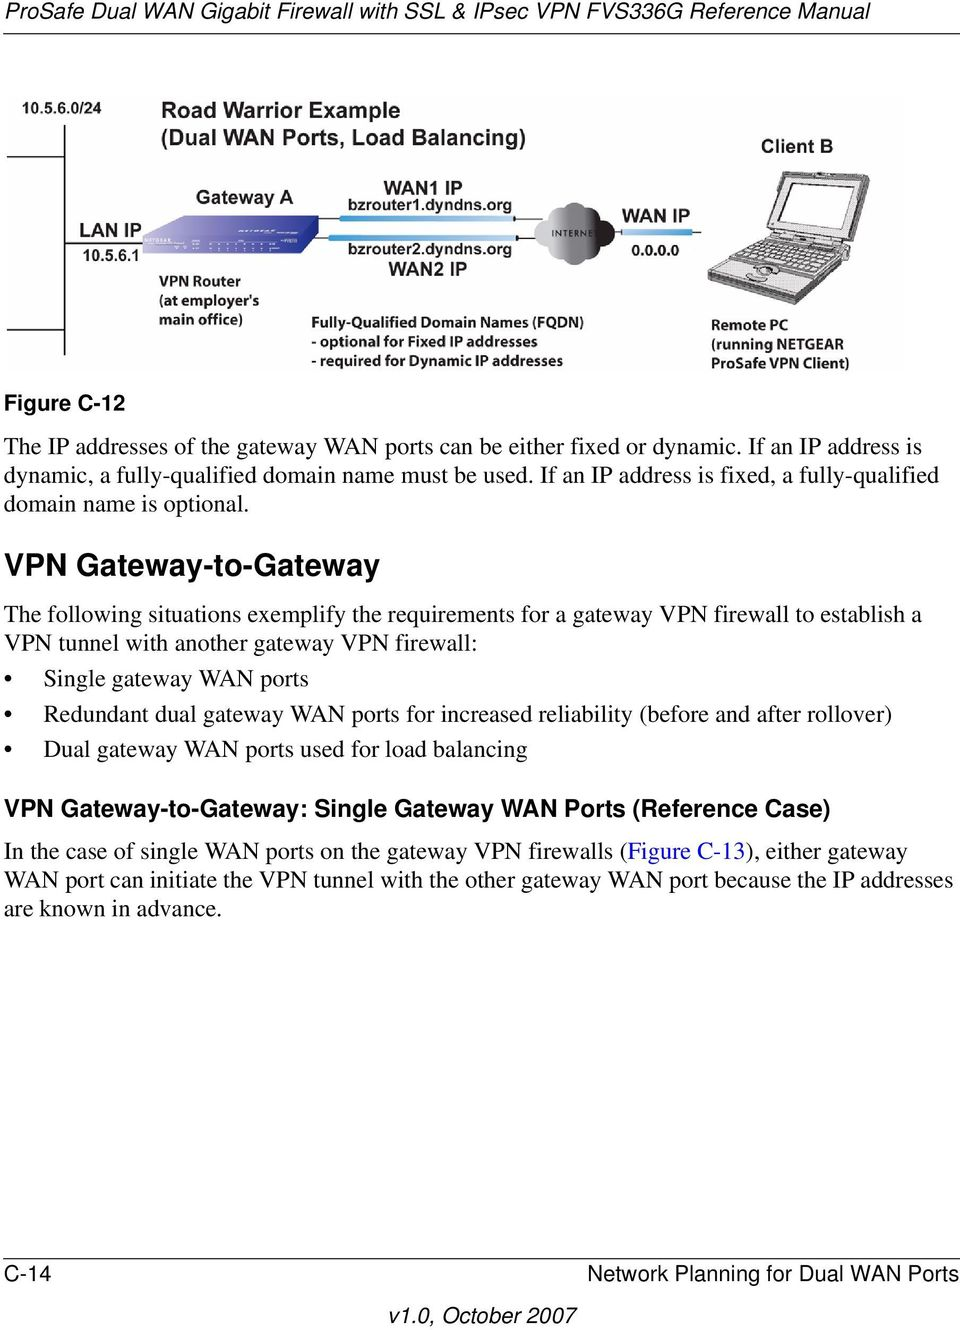 VPN Gateway-to-Gateway The following situations exemplify the requirements for a gateway VPN firewall to establish a VPN tunnel with another gateway VPN firewall: Single gateway WAN ports Redundant